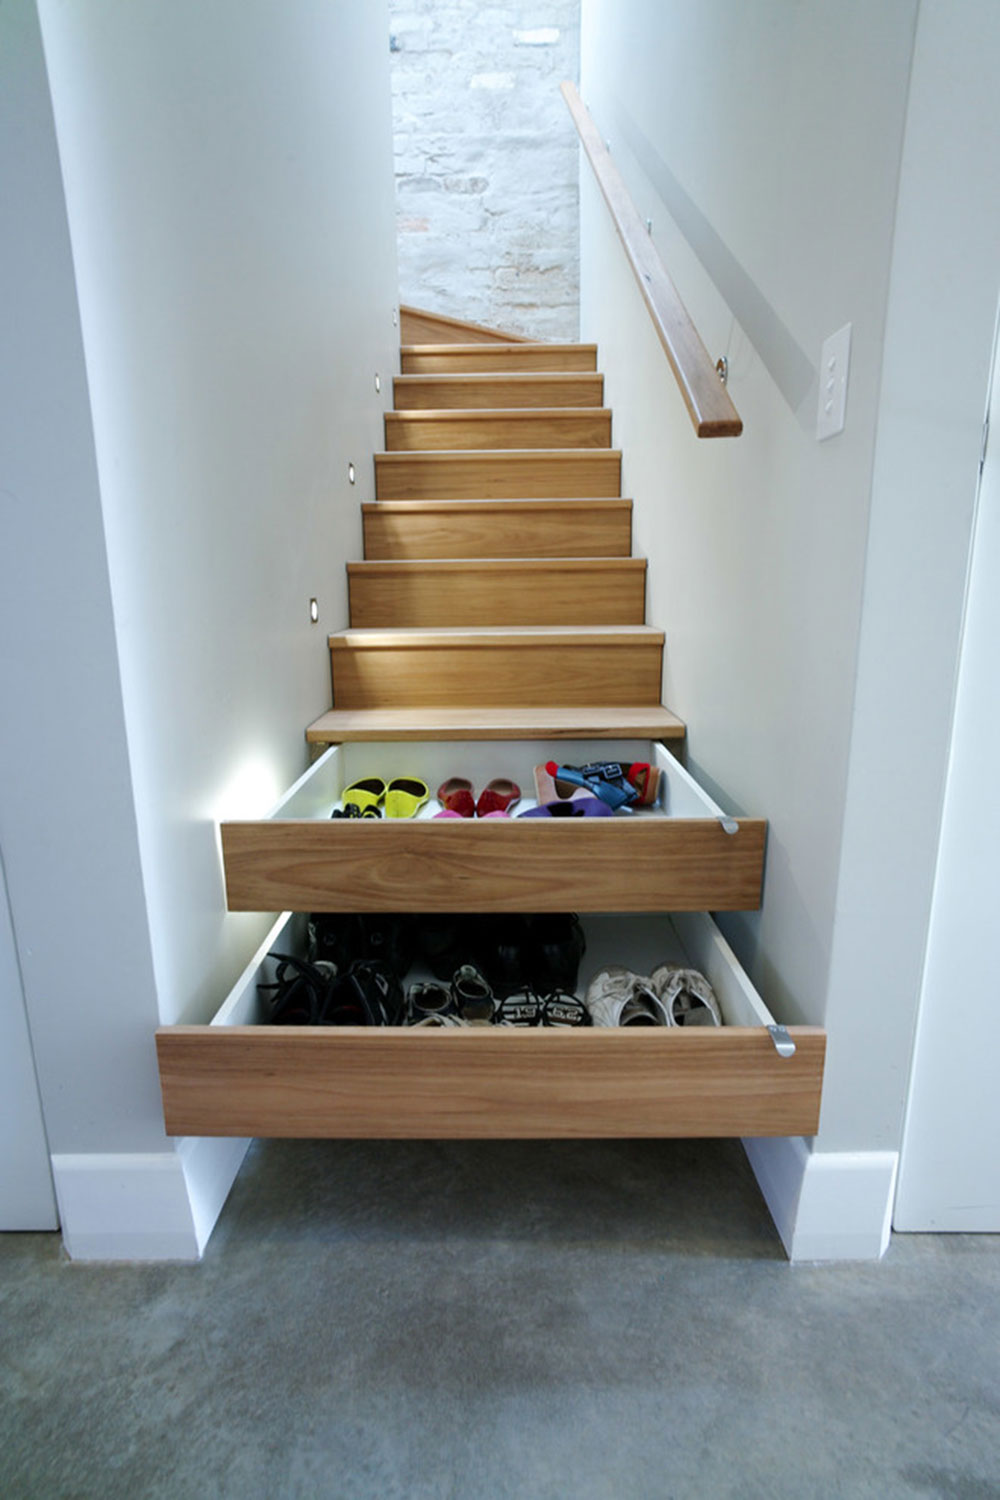 Store Them in the Stairs